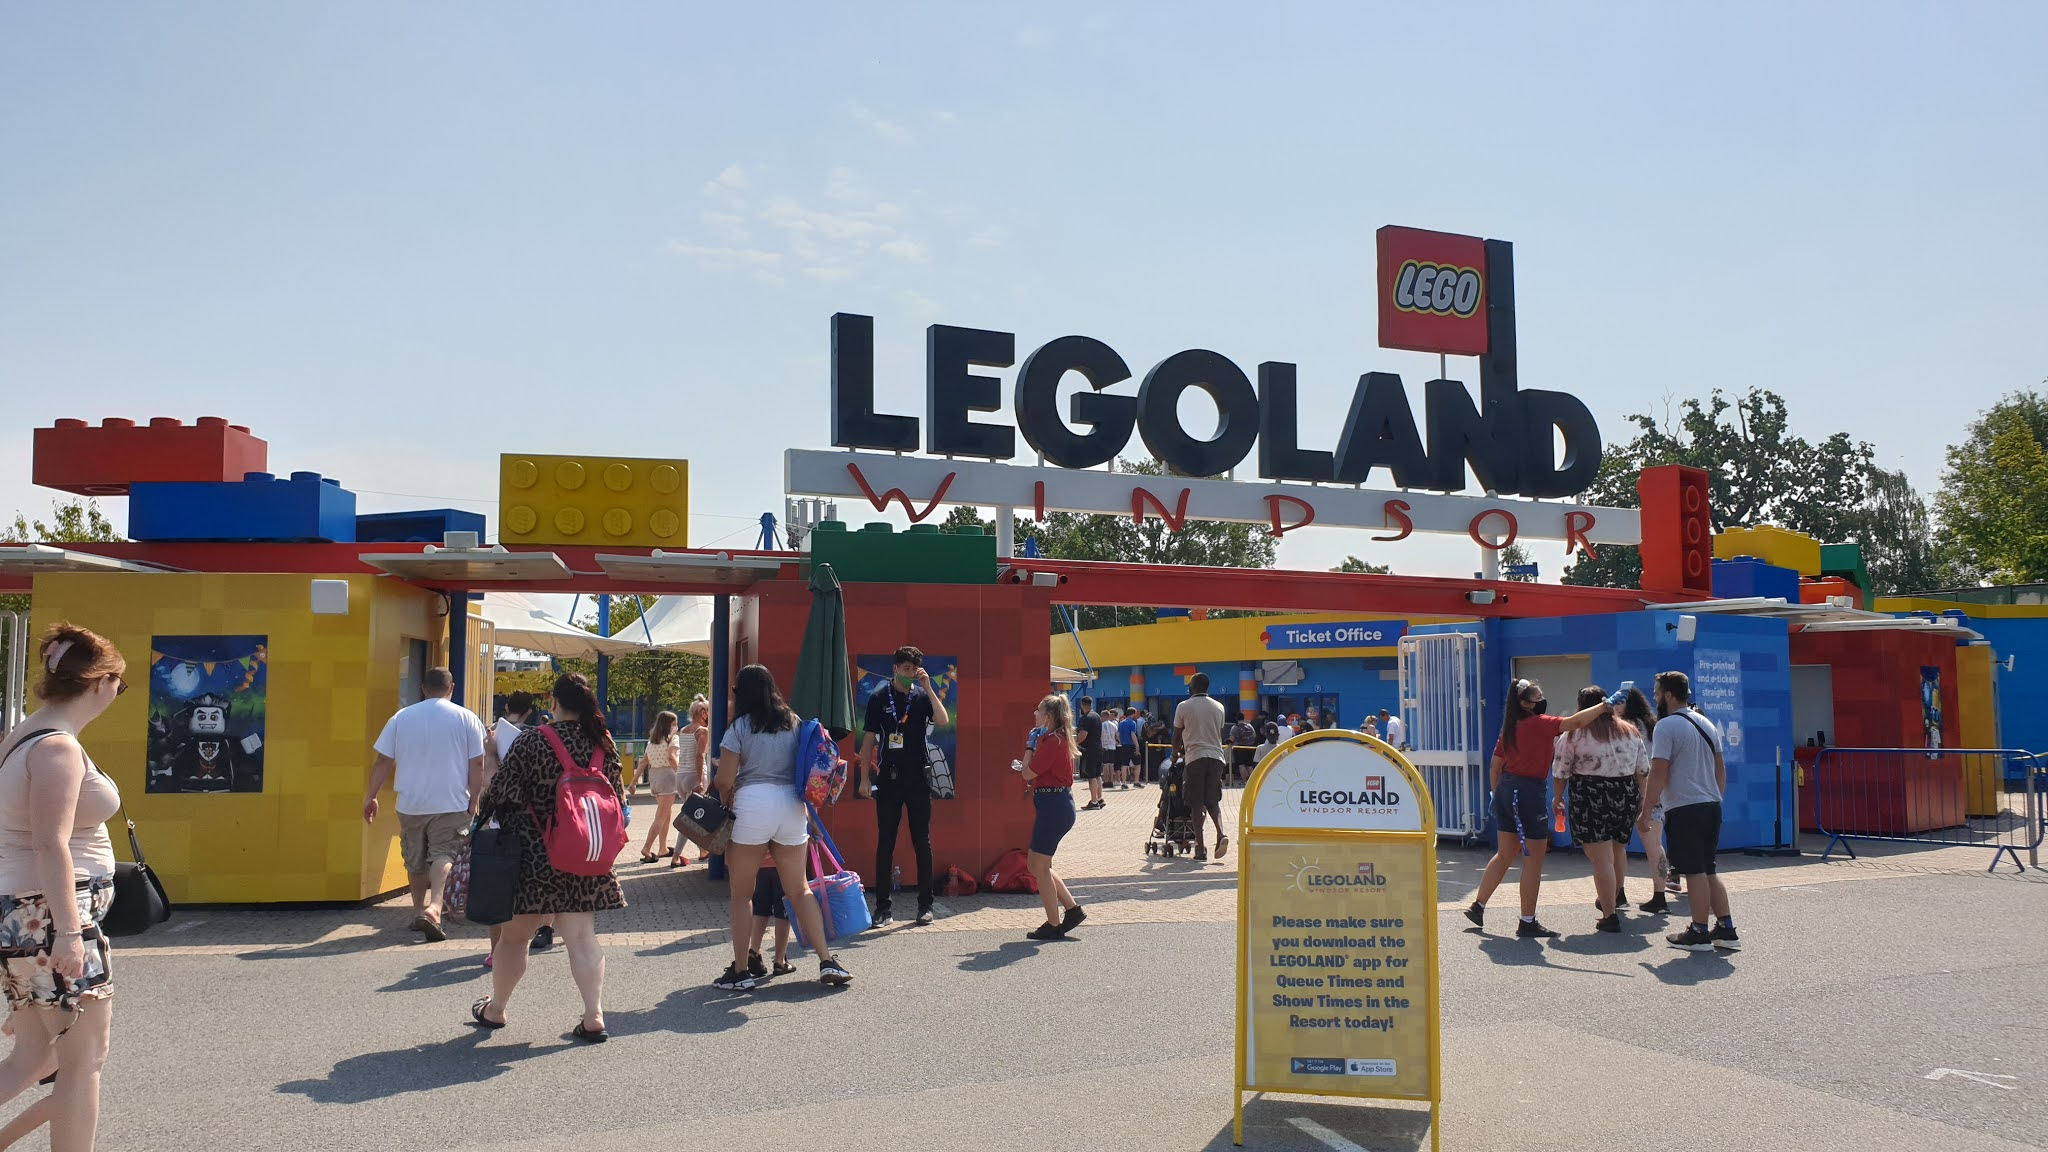 legoland windsor entry